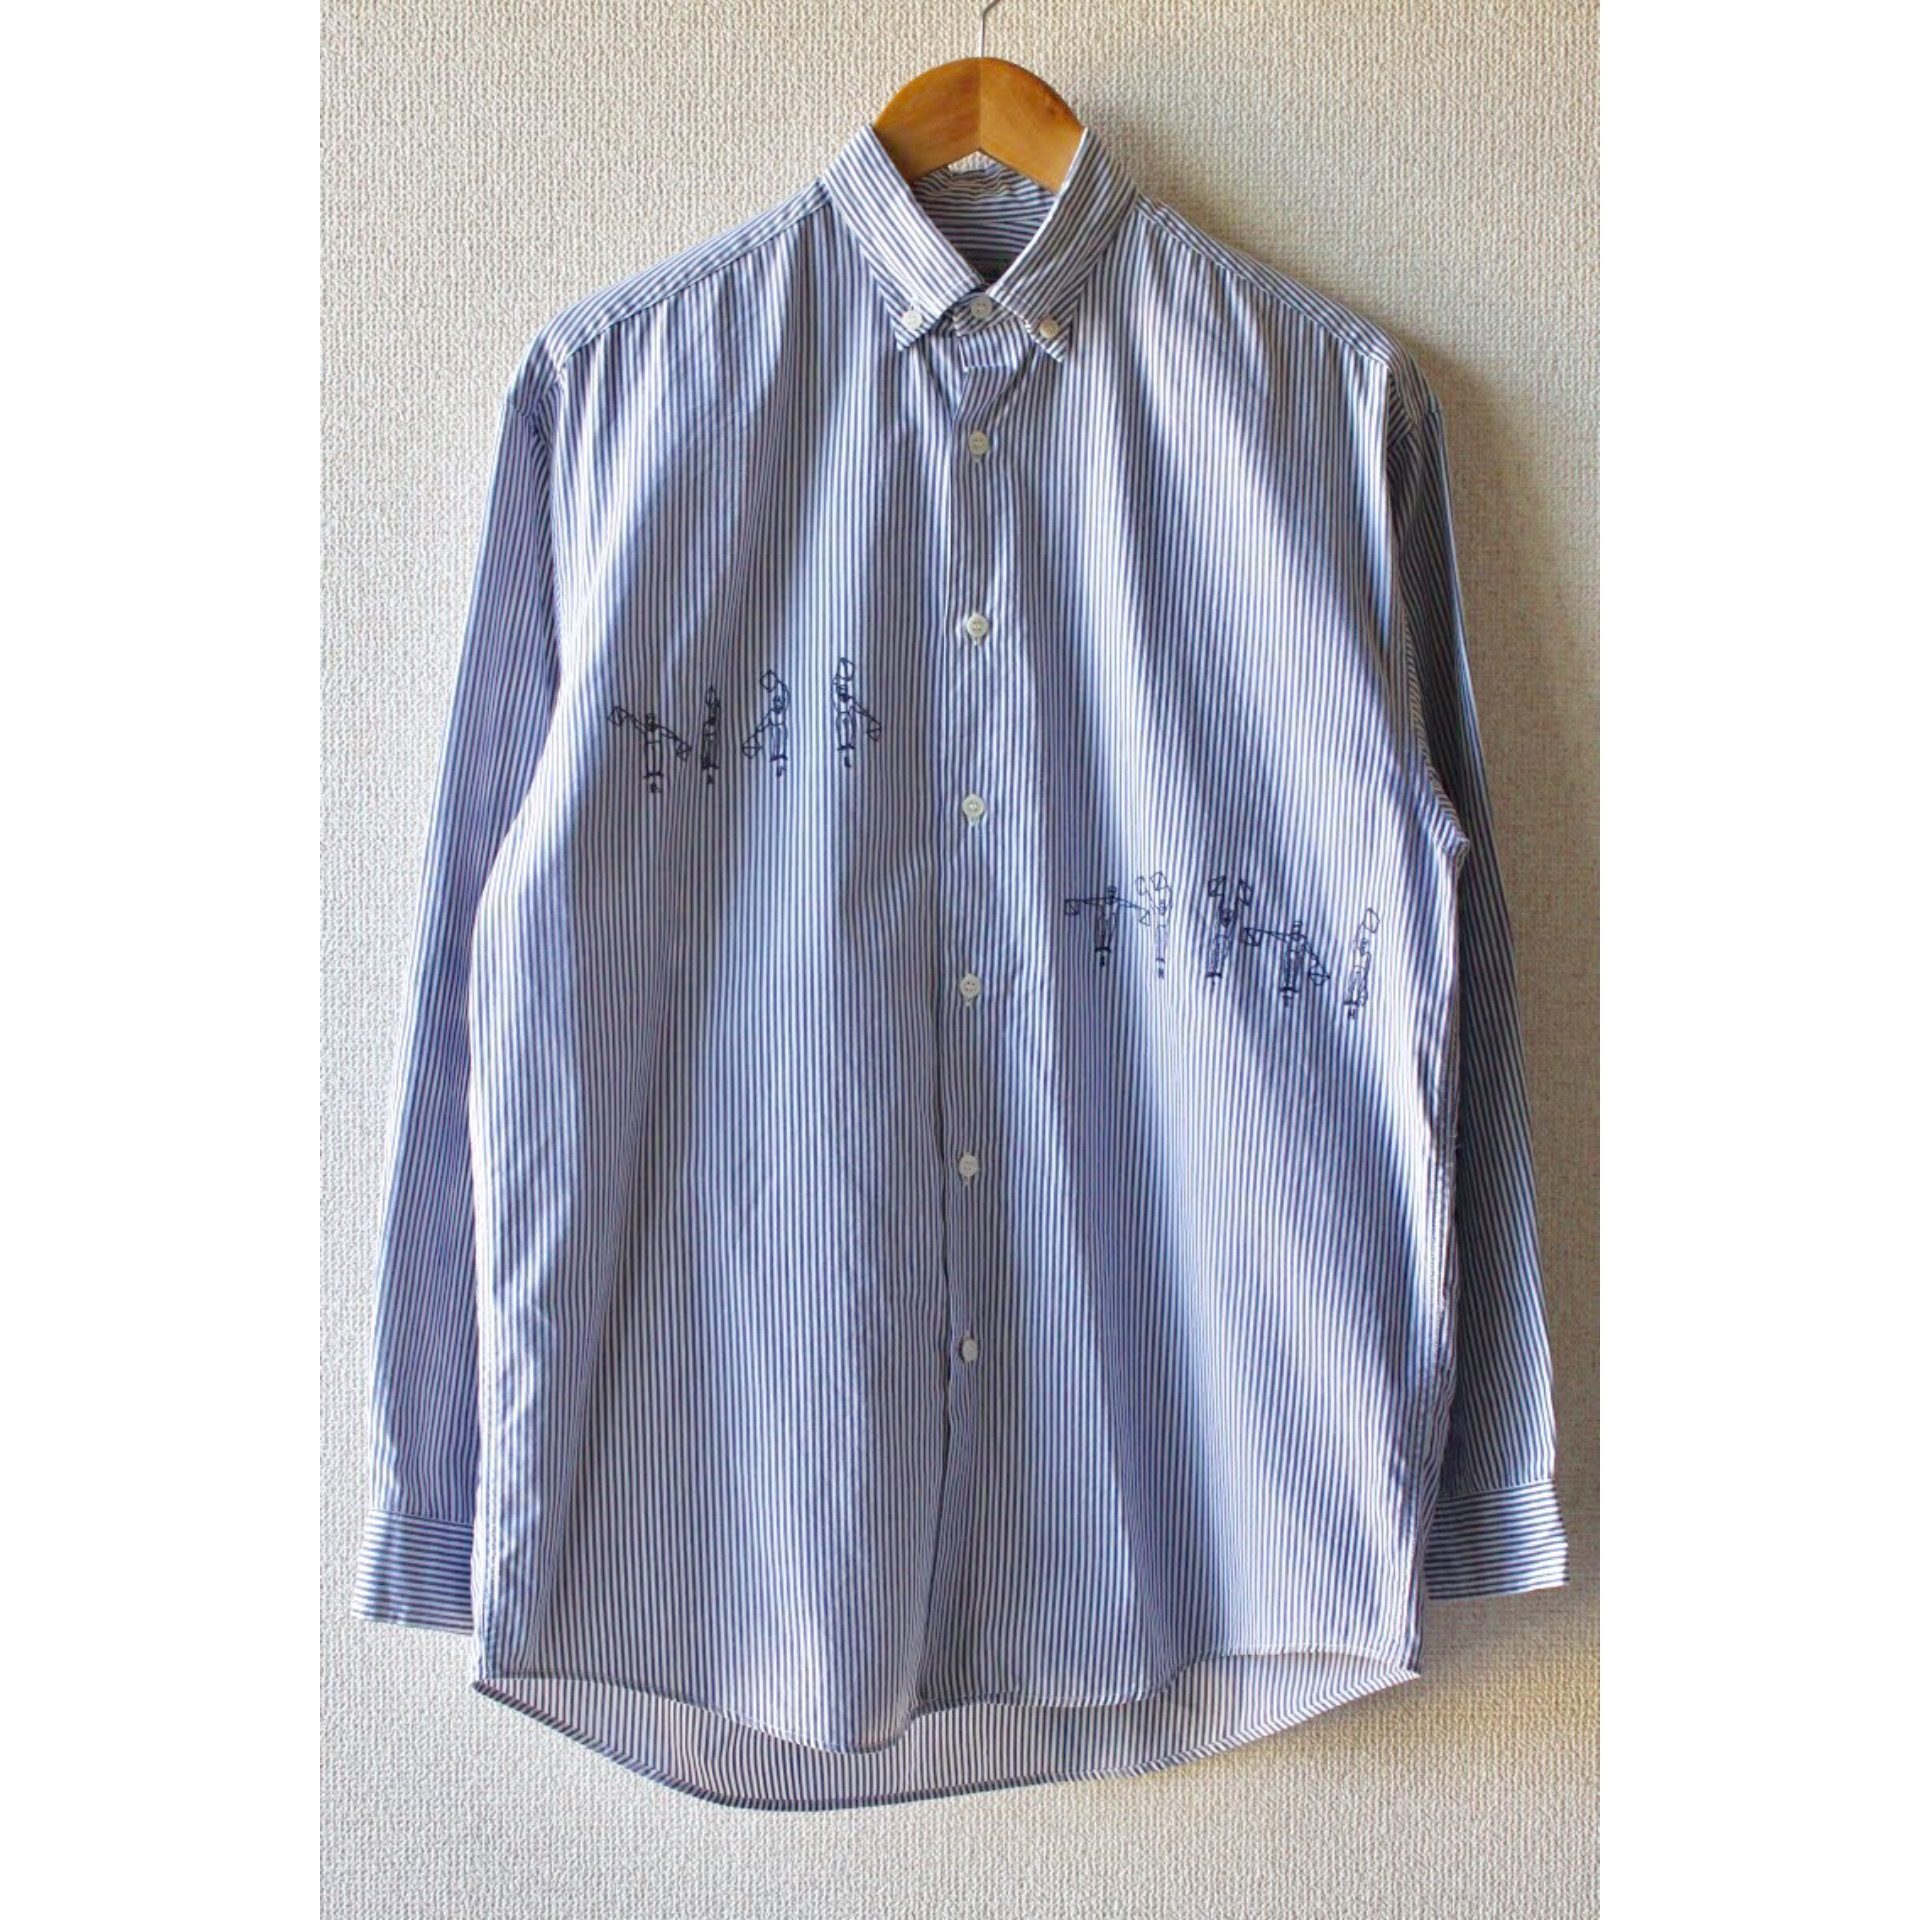 Button down stripe shirt by Paul Smith